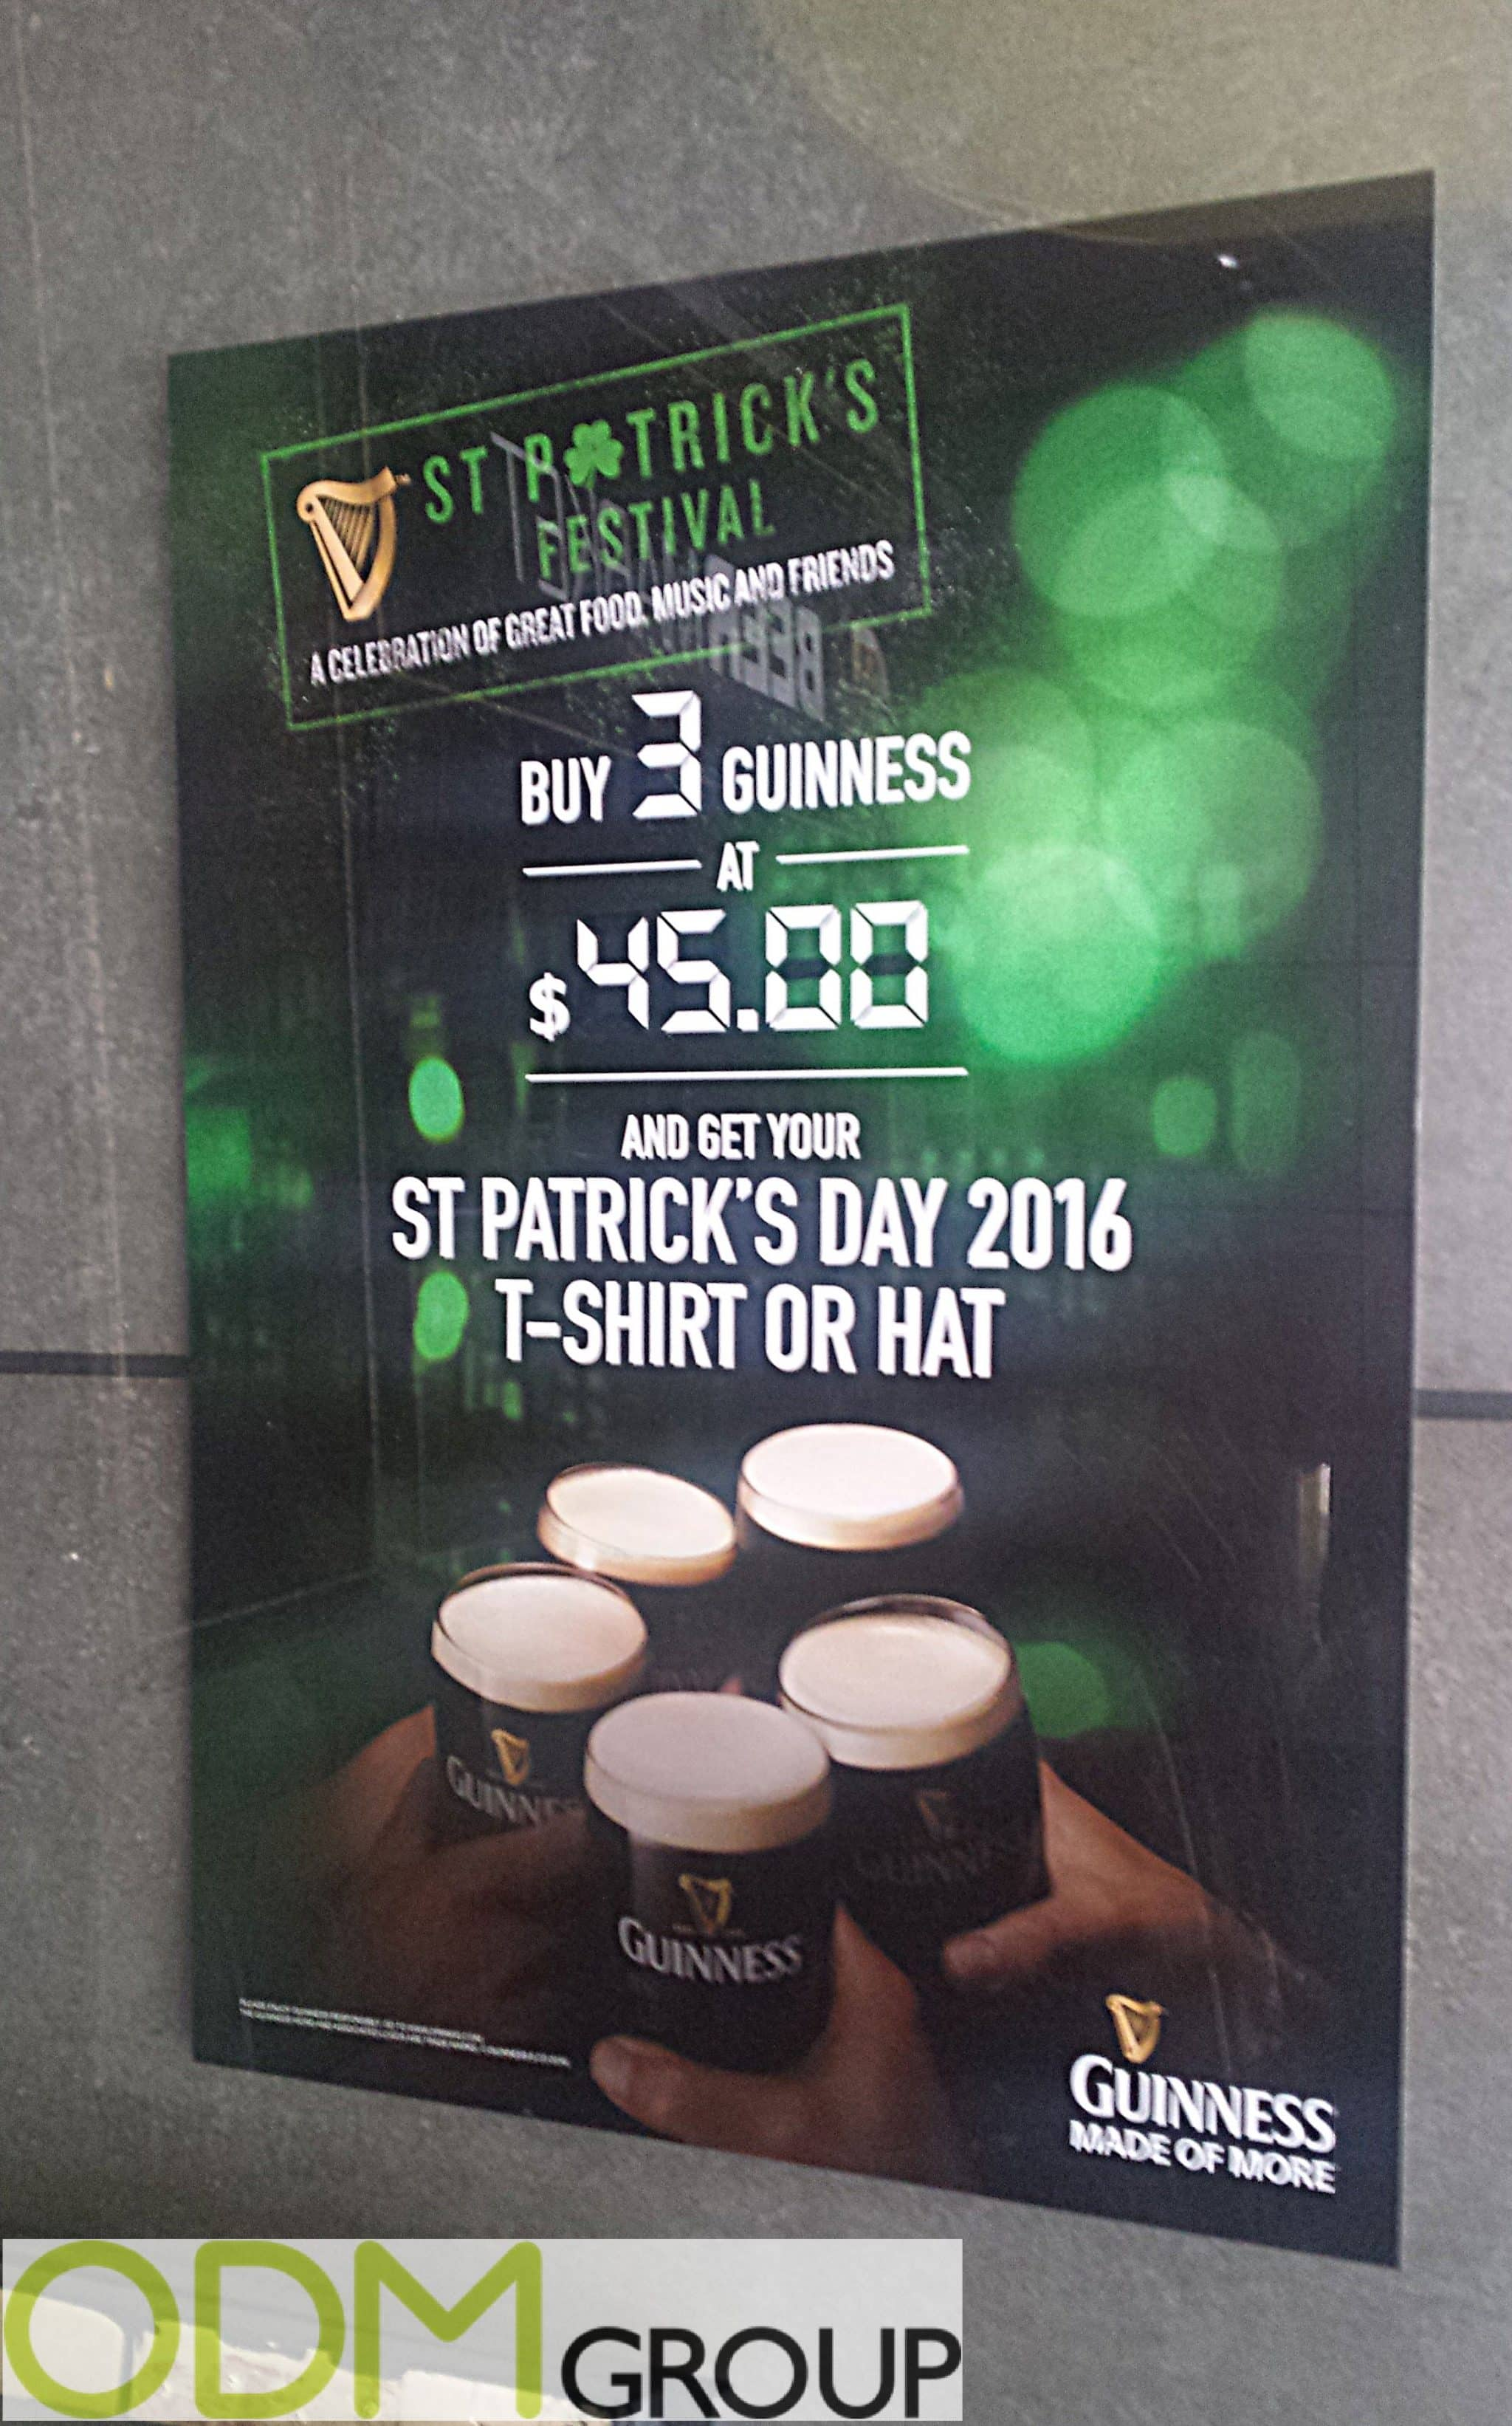 St Patricks Day Merchandise - Guinness T-Shirt and Hat